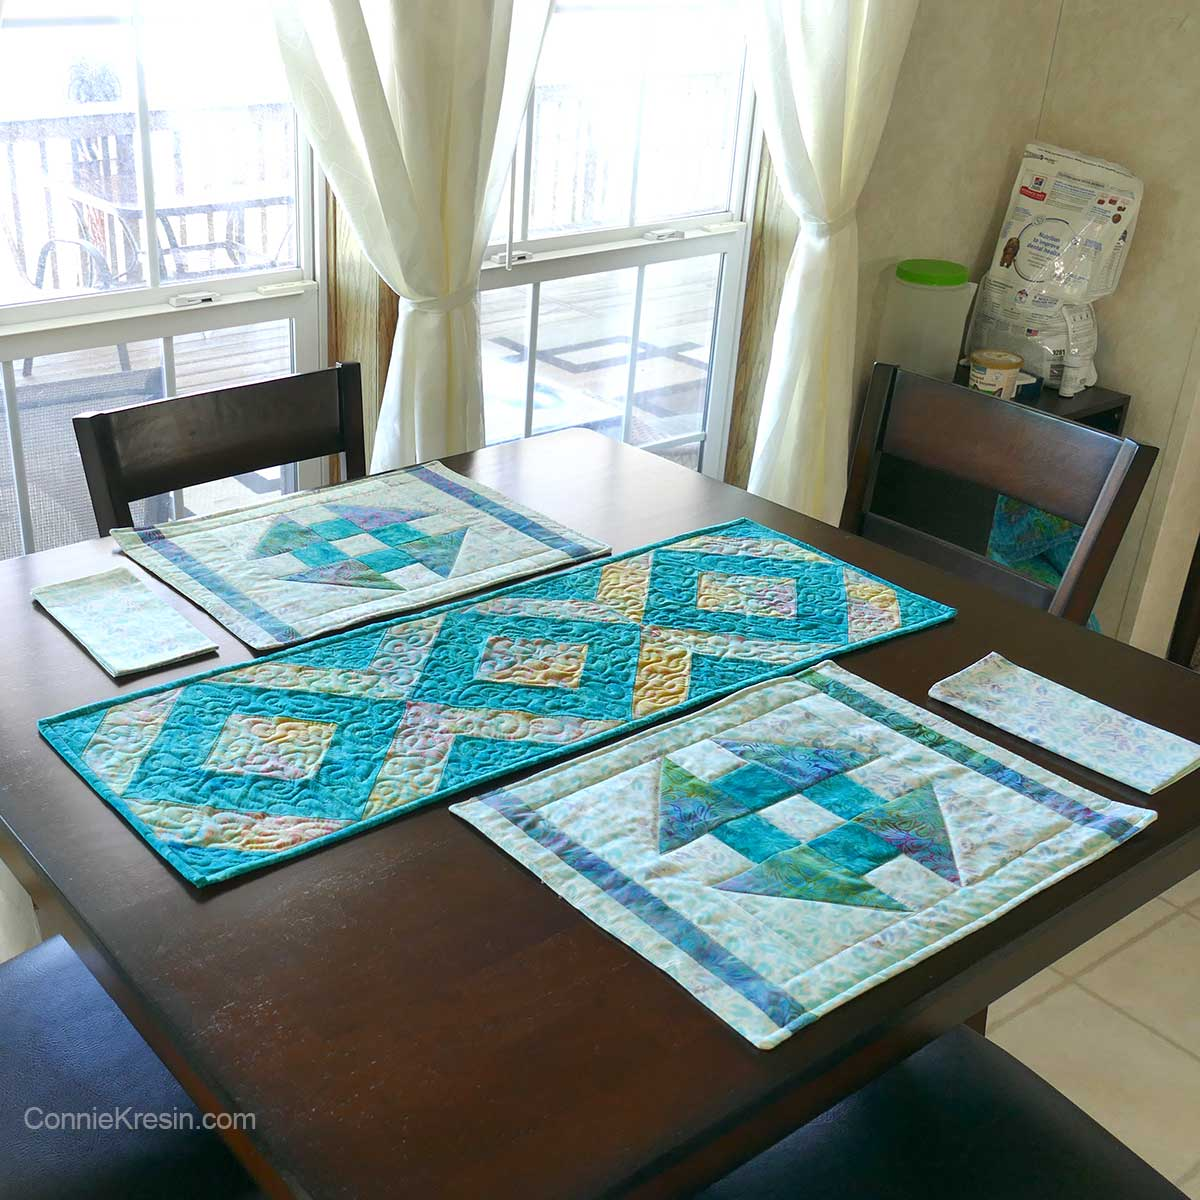 Strip tube table runner and place mats on table